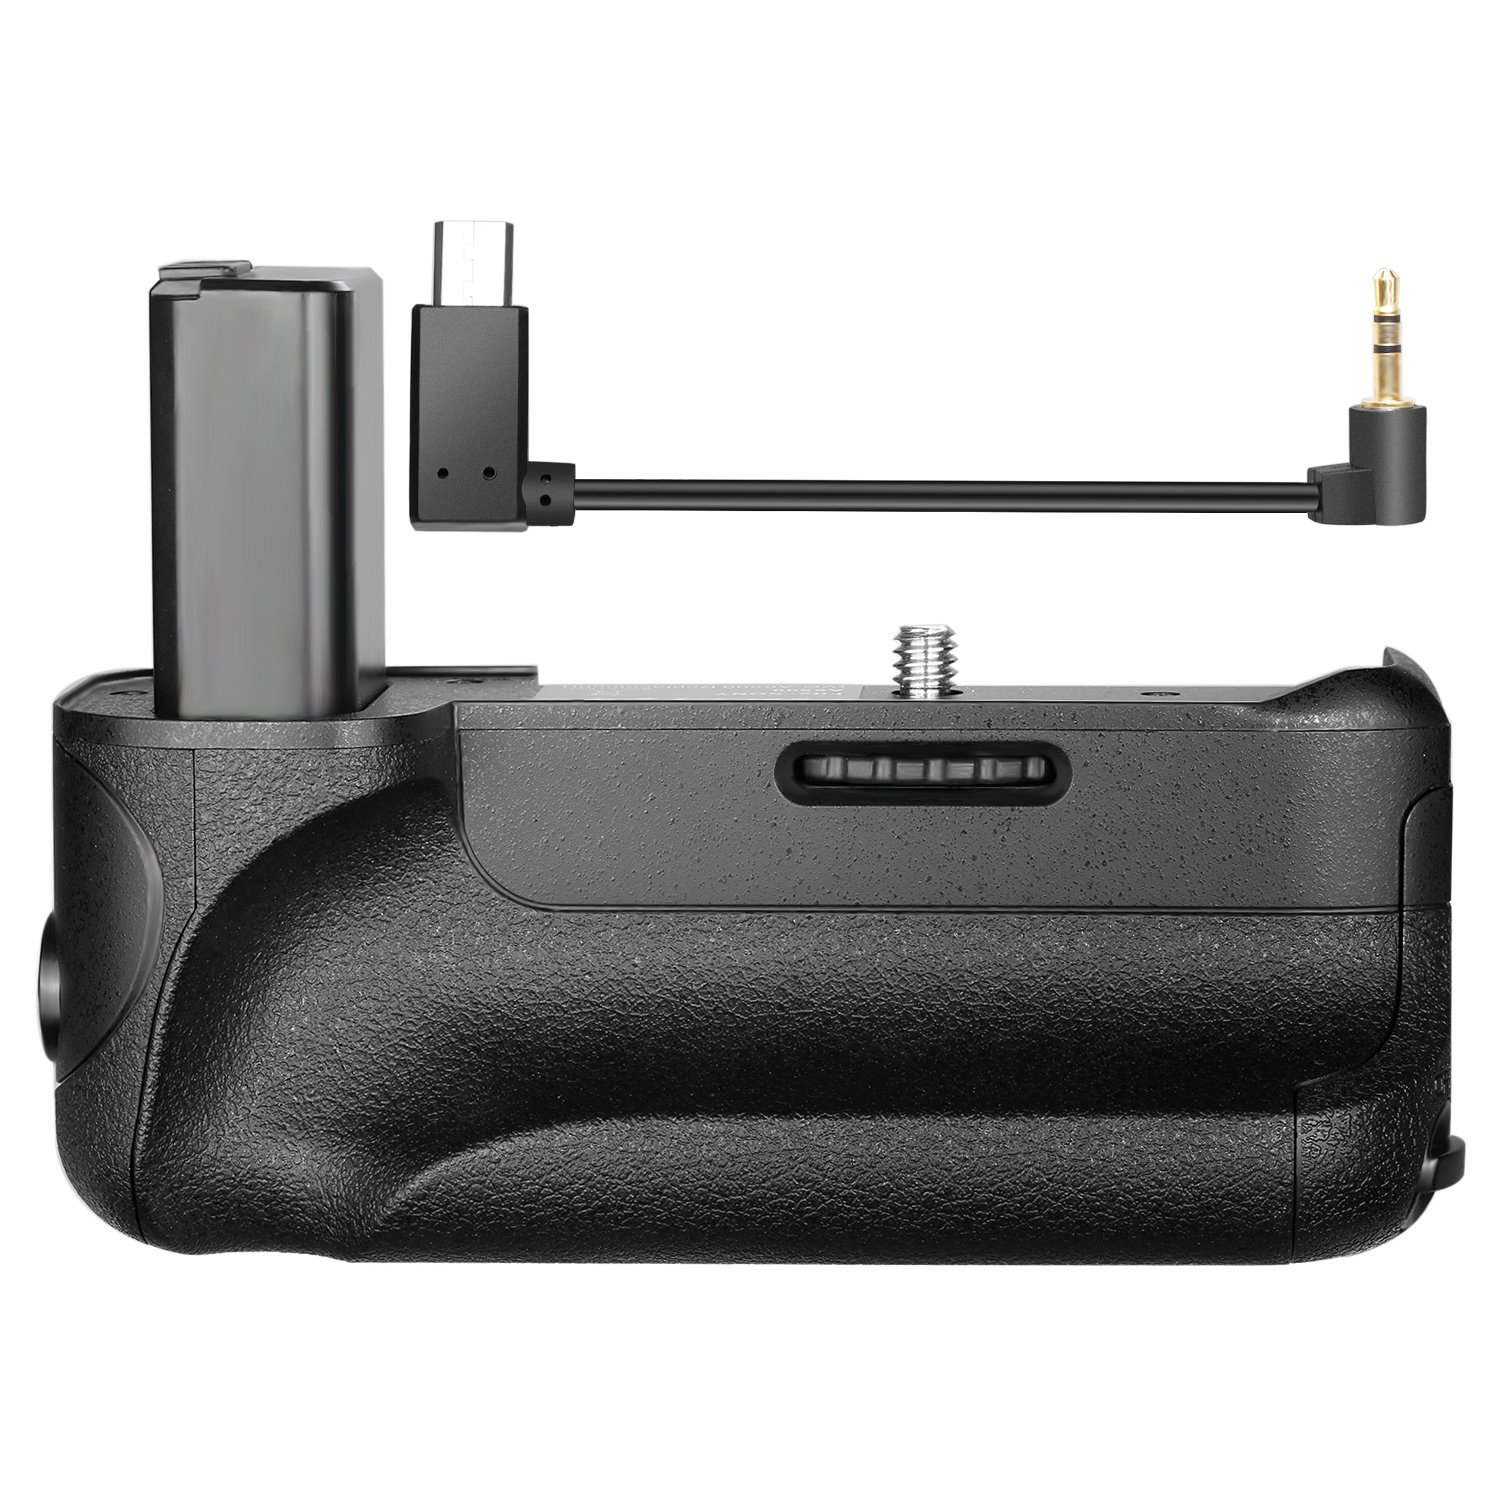 Neewer Pro Camera Battery Grip with Vertical Shooting Function for Sony A6500 Mirrorless Camera, Work with One or Two NP-FW50 Replacement Li-ion Battery (Battery NOT Included)